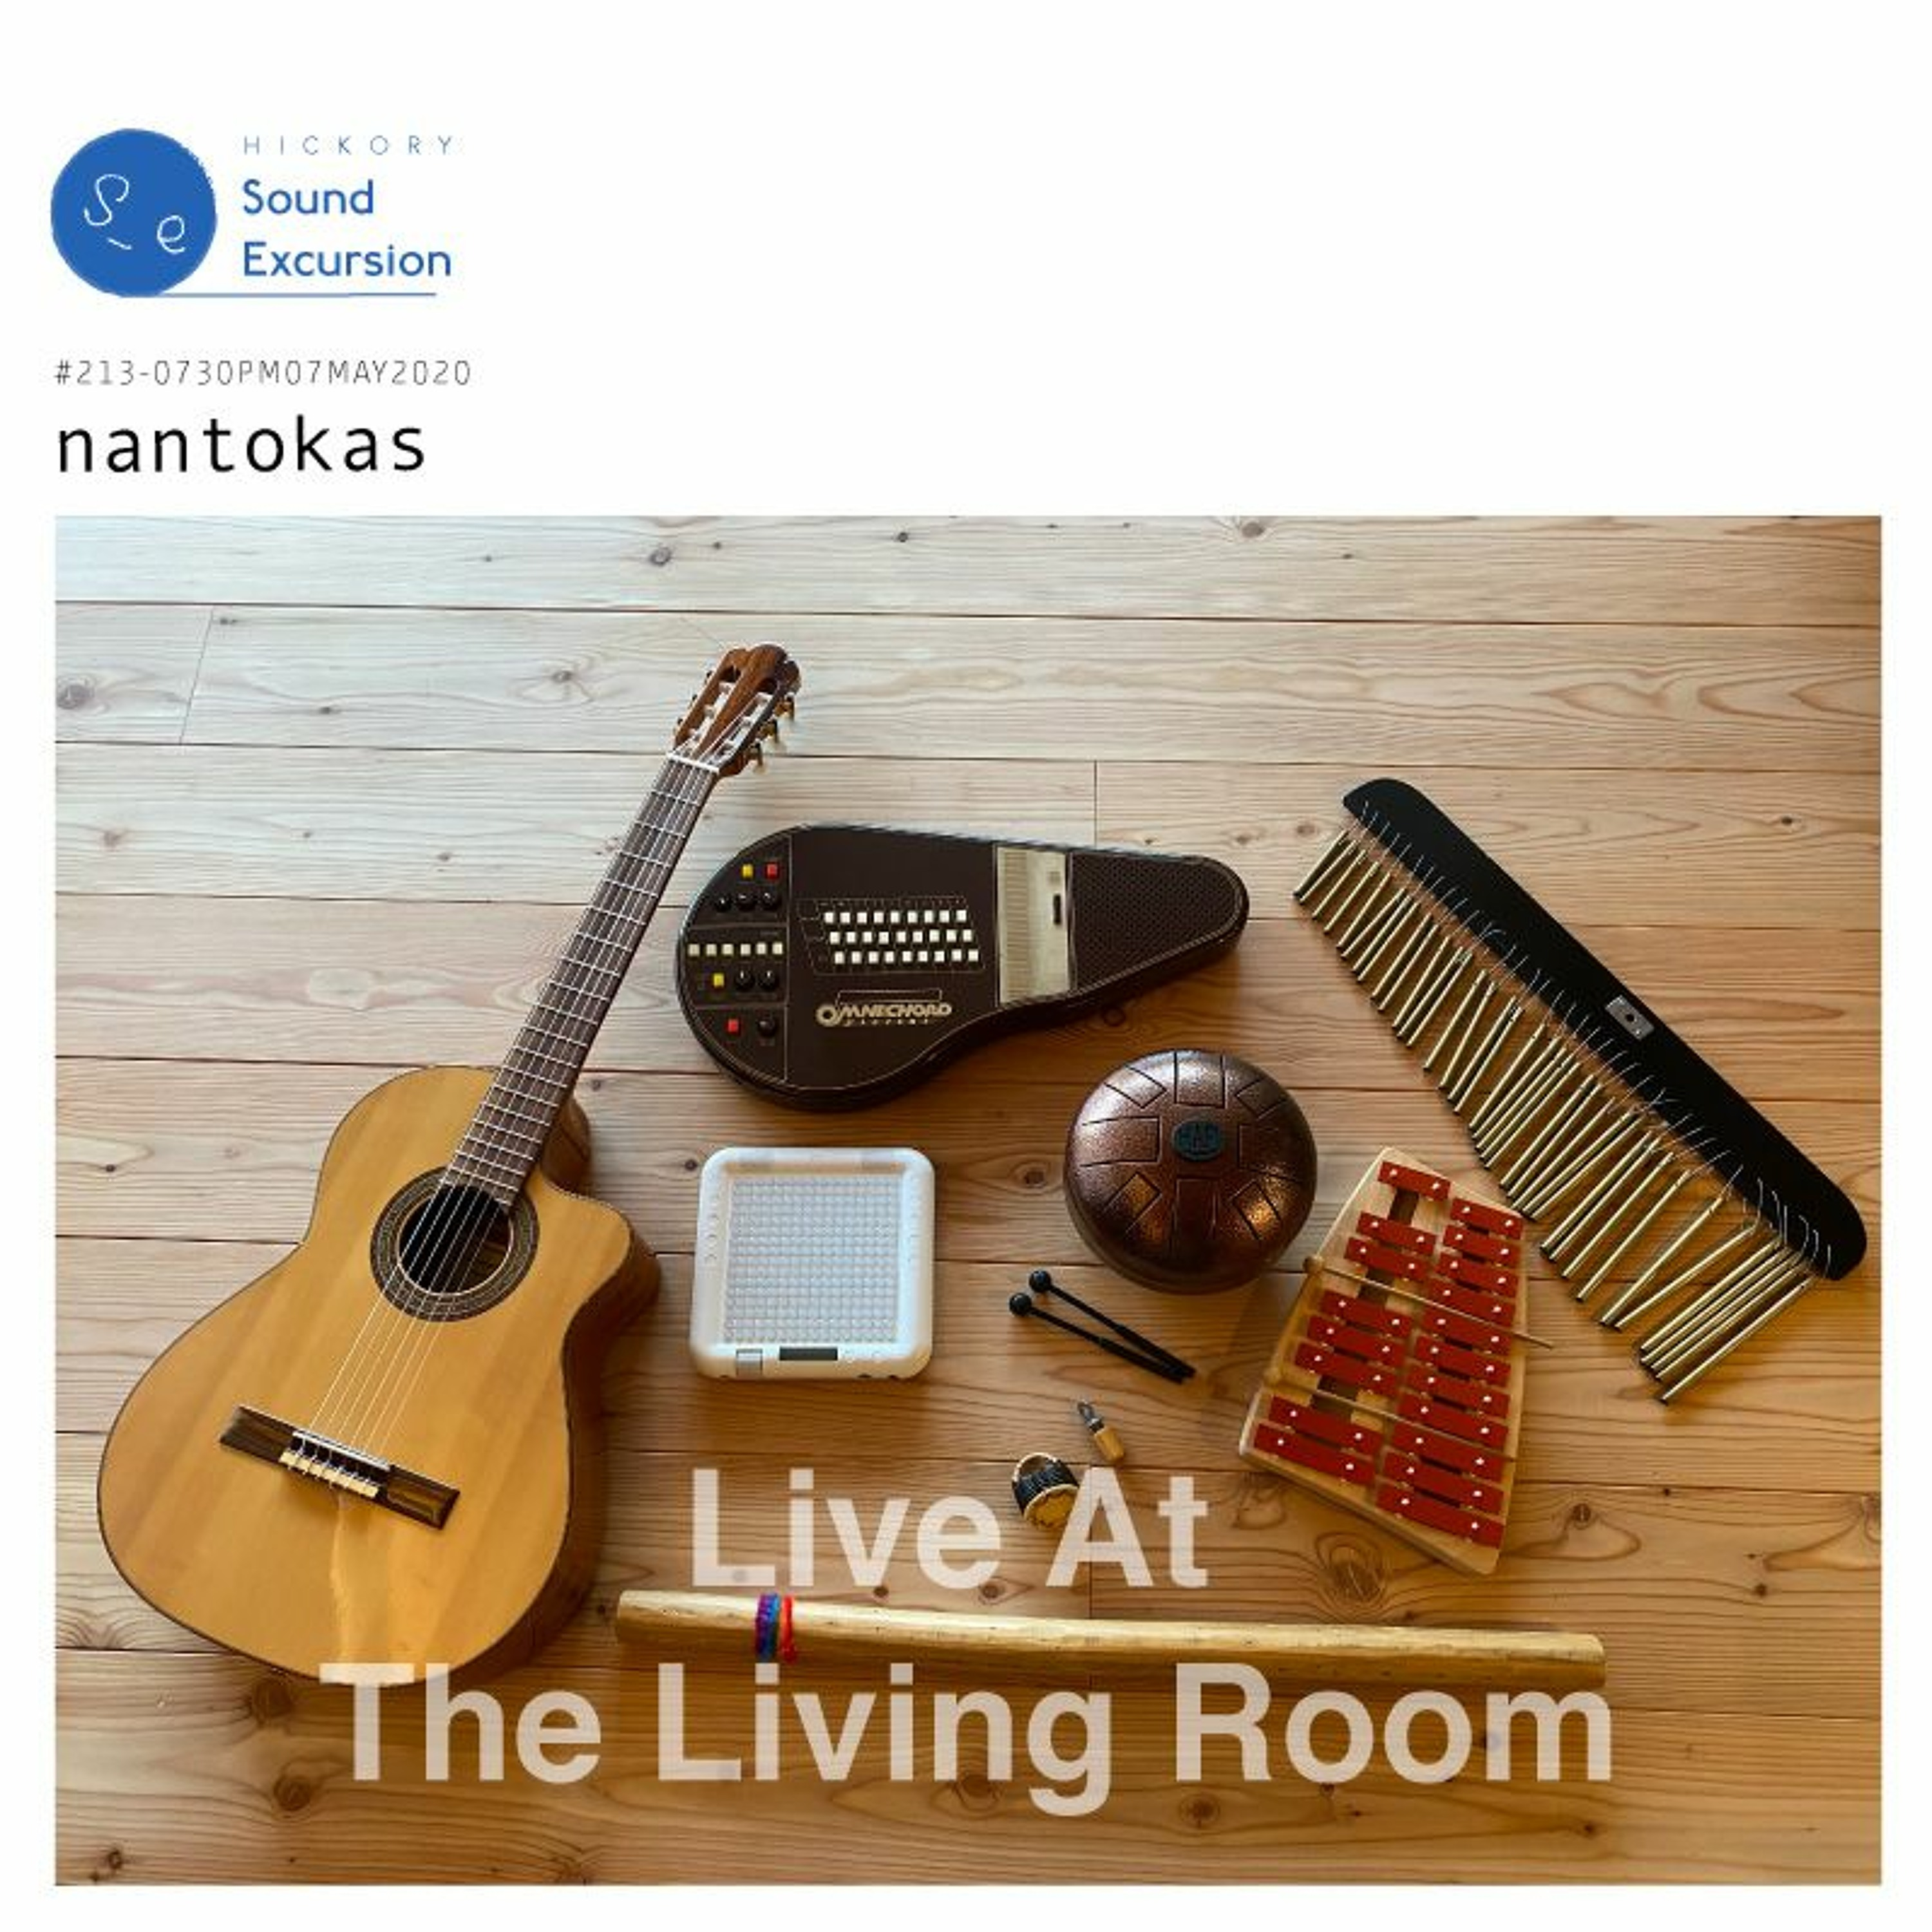 #213-07MAY2020 ▶ ナントカズ - Live At The Living Room